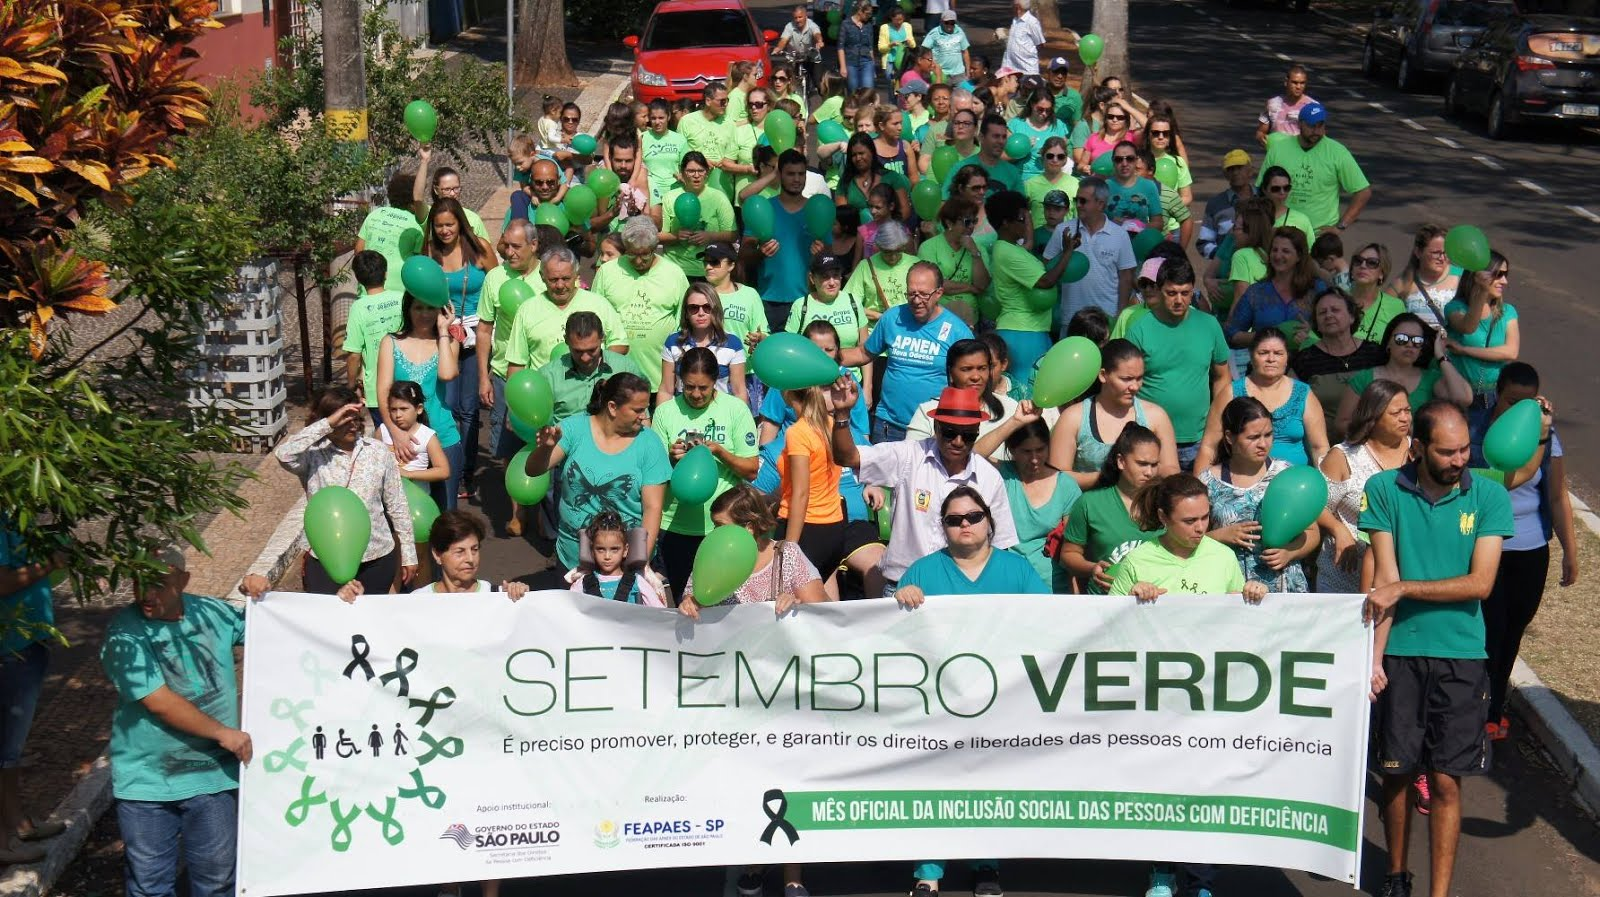 1ª Caminhada do Setembro Verde